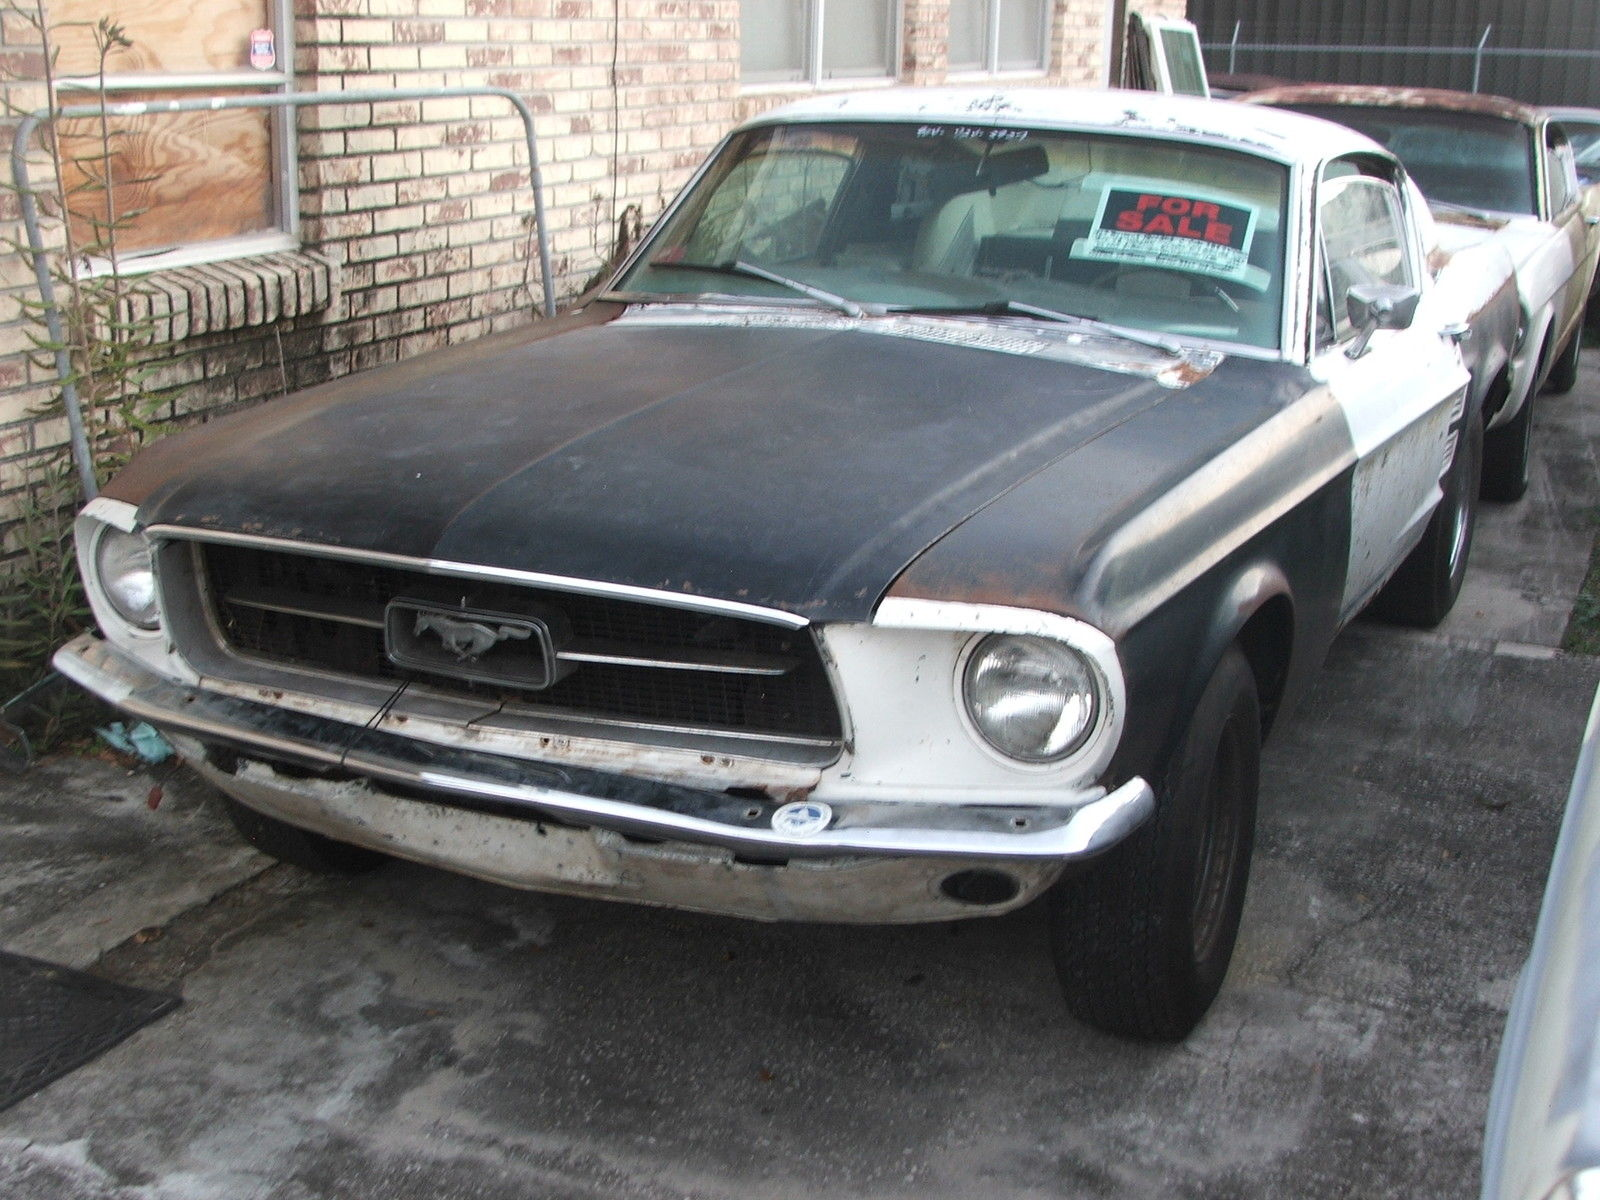 Ford Mustang Fastback 1967 Supercharged 1964 Project Car For Sale